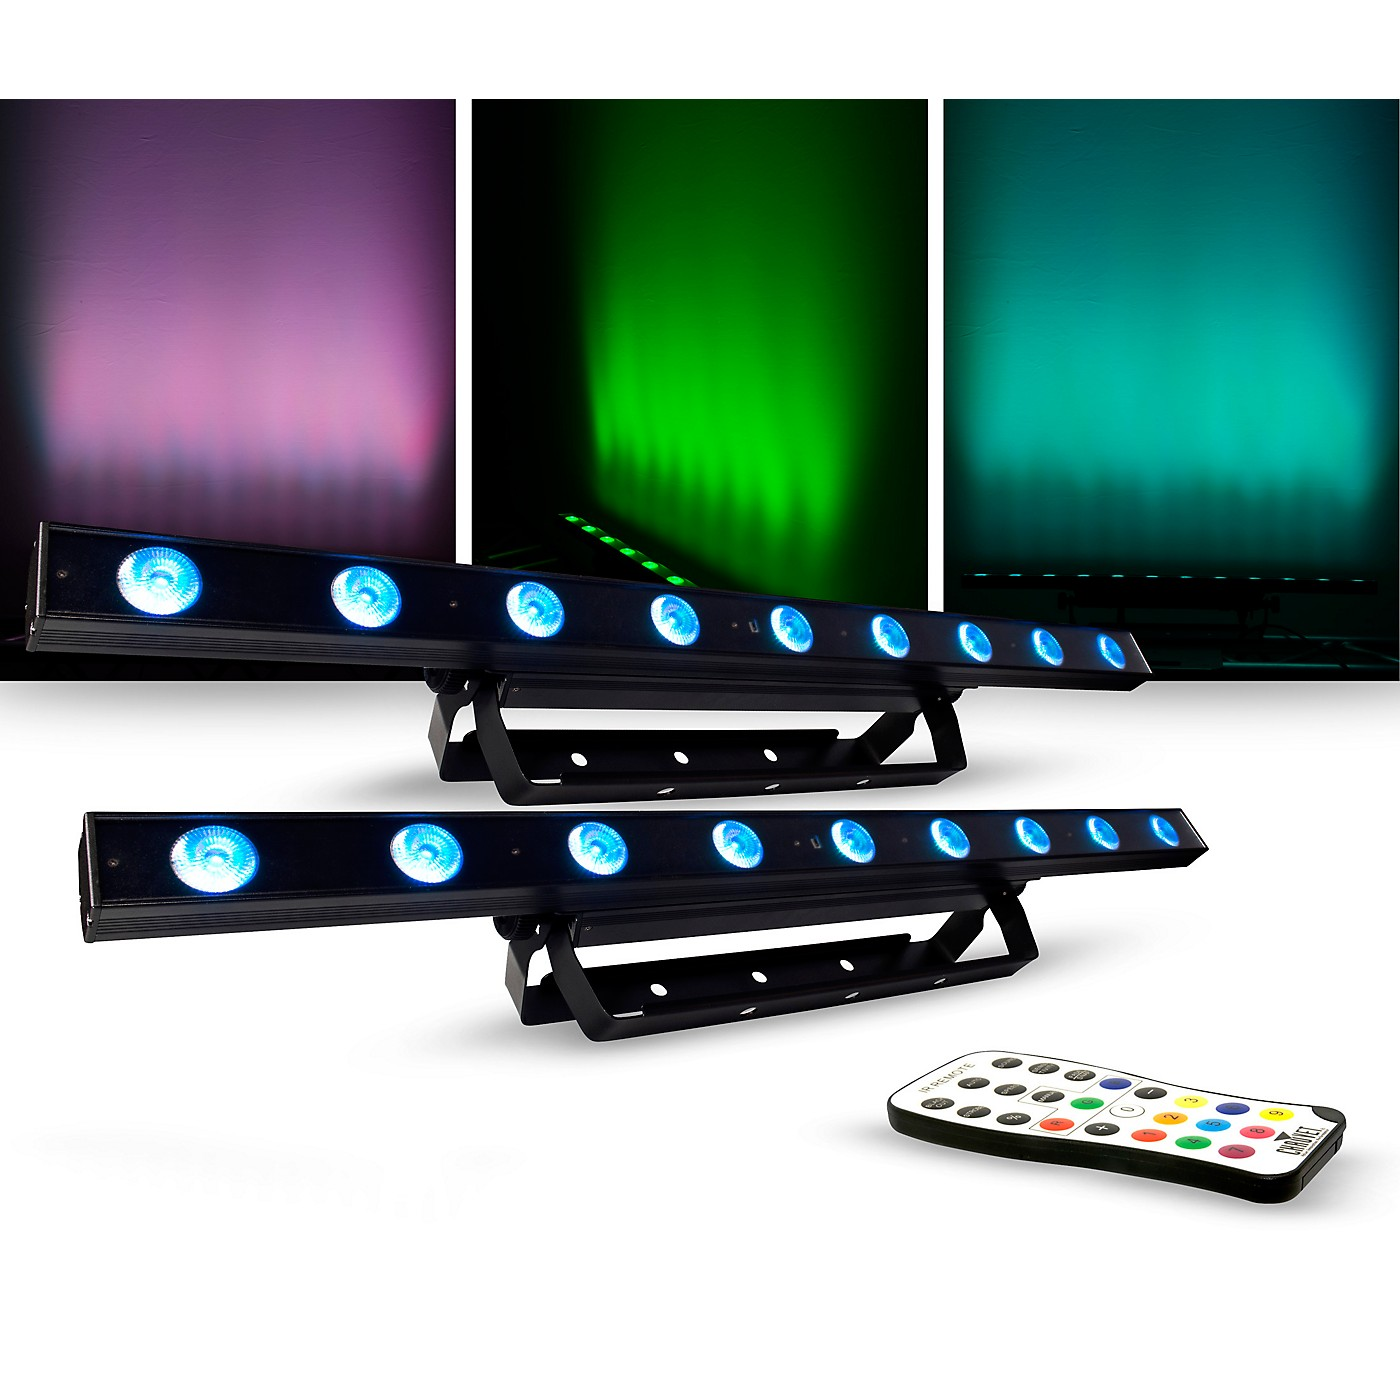 CHAUVET DJ Lighting Package with COLORband LED Effect Light and IR-6 Controller thumbnail